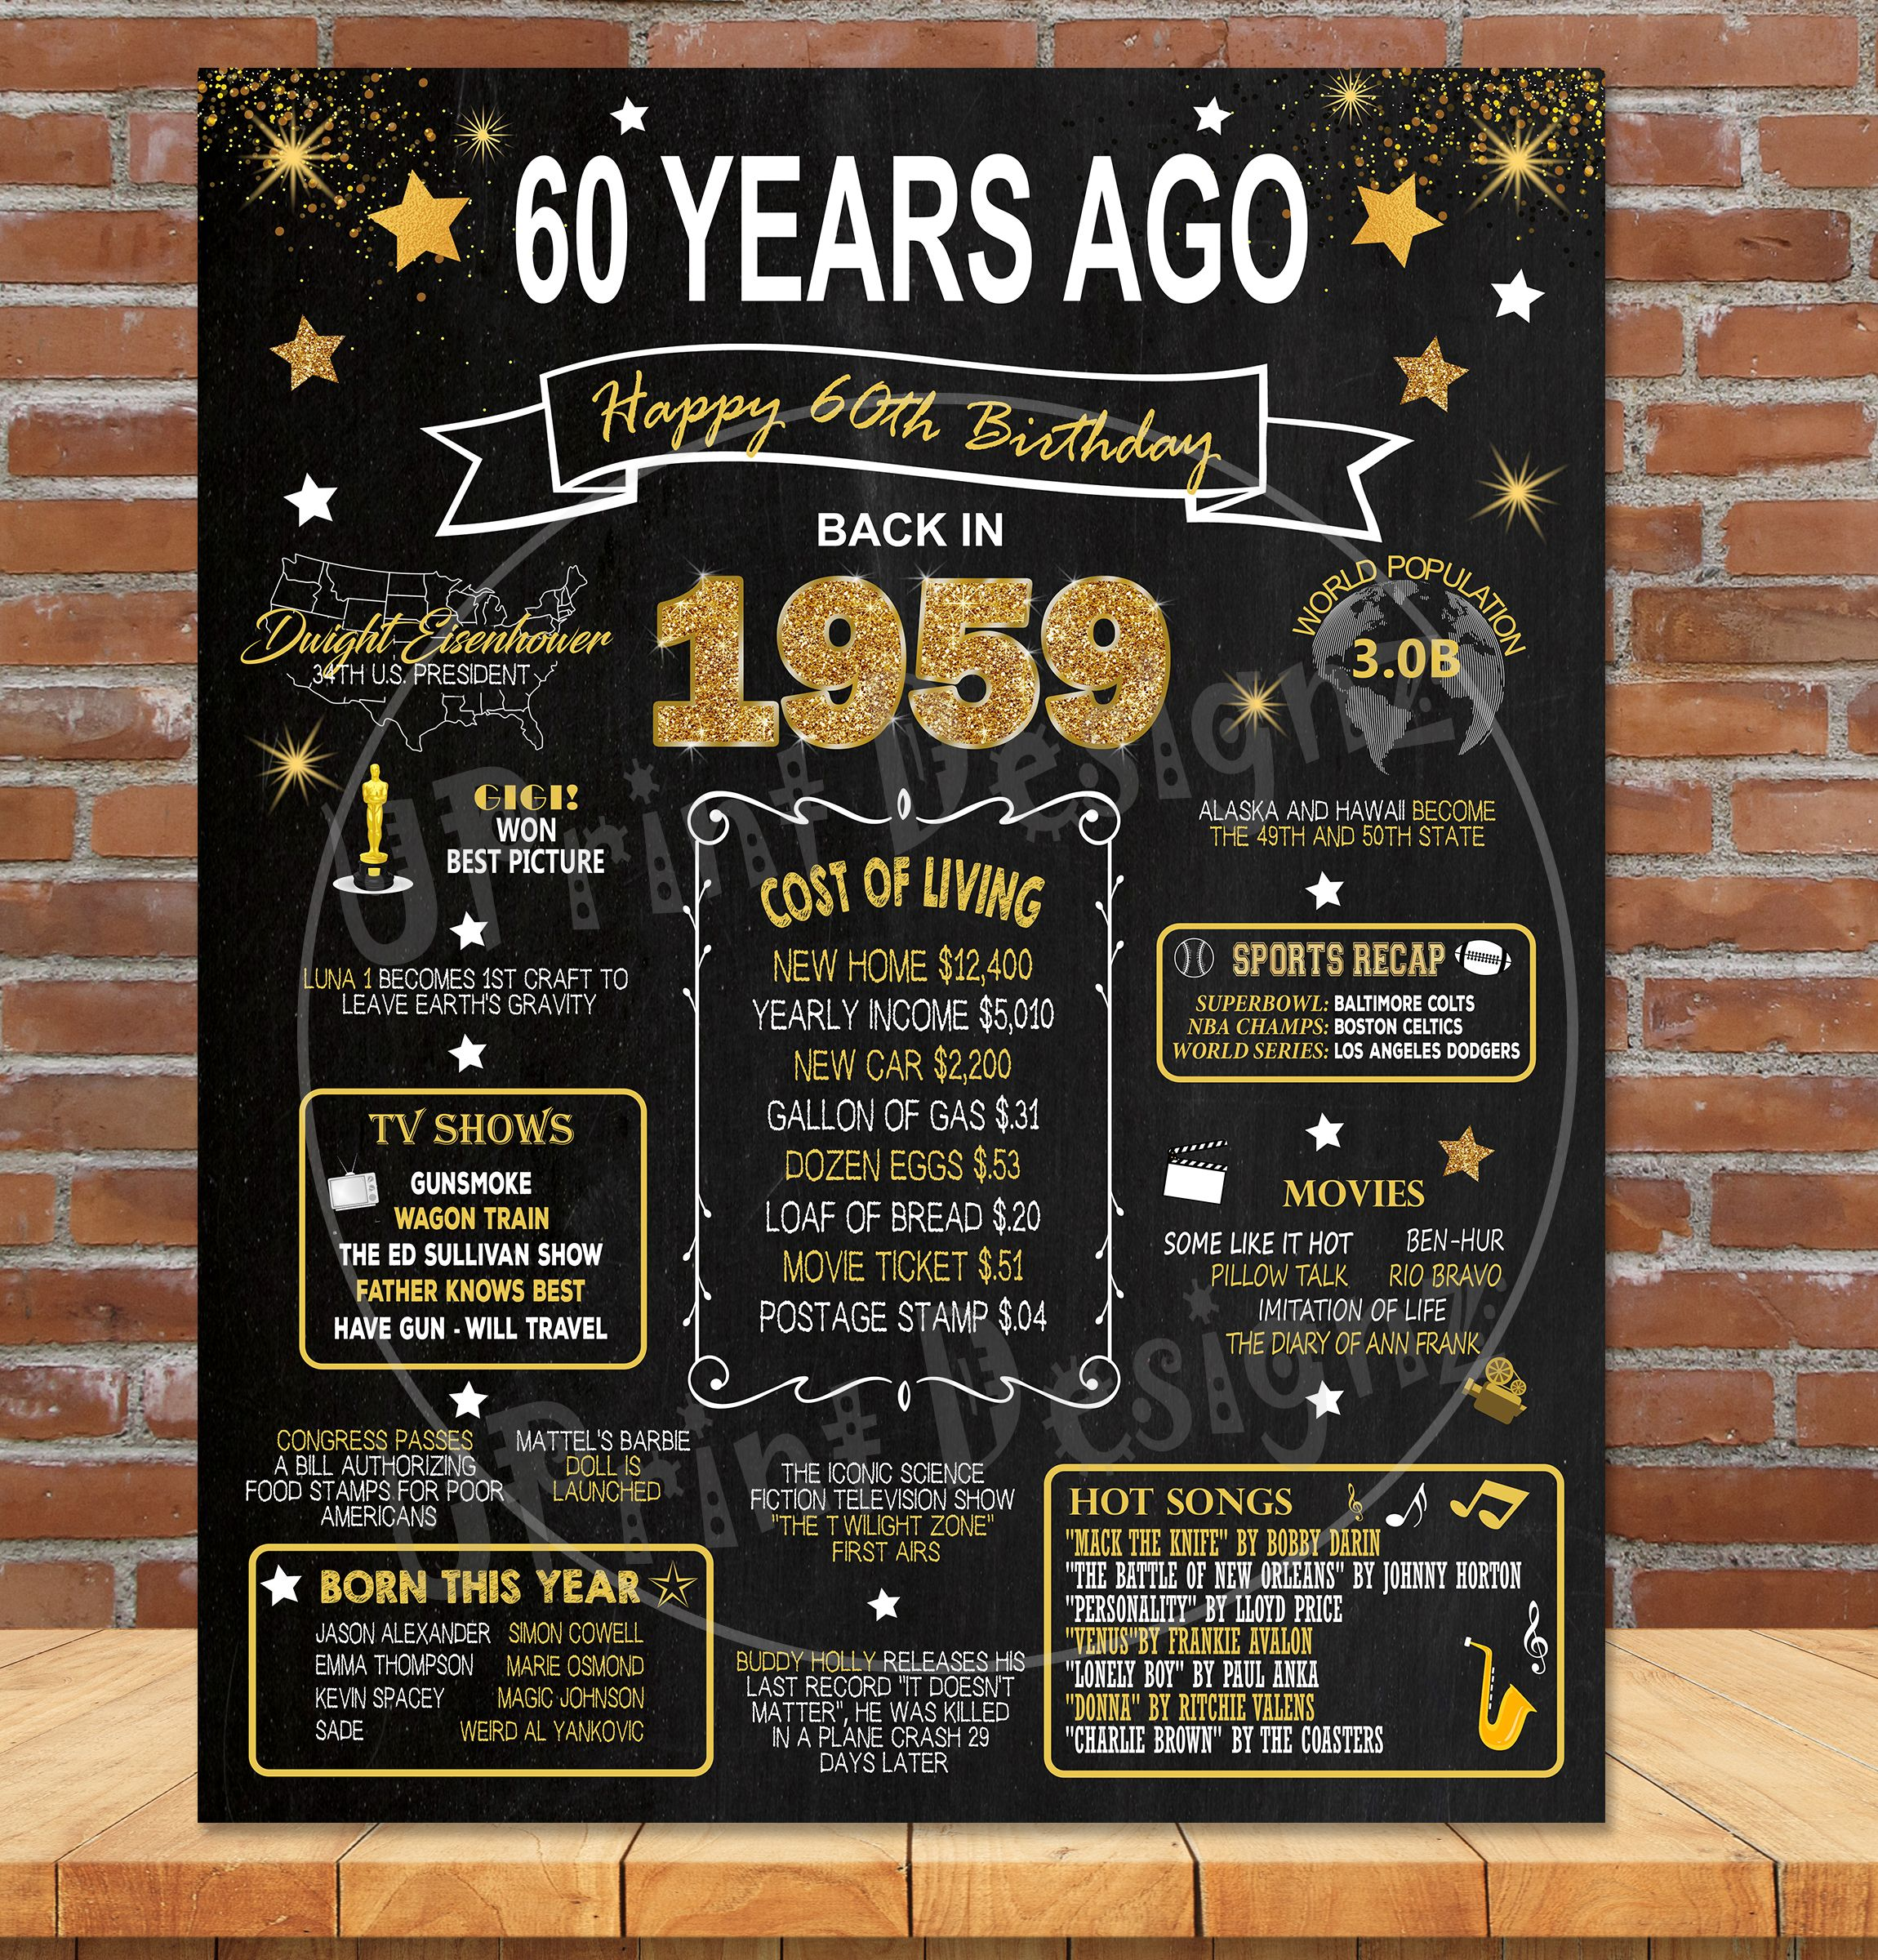 Fun Facts About 60th Birthday Back In 1959 Gifts For Her